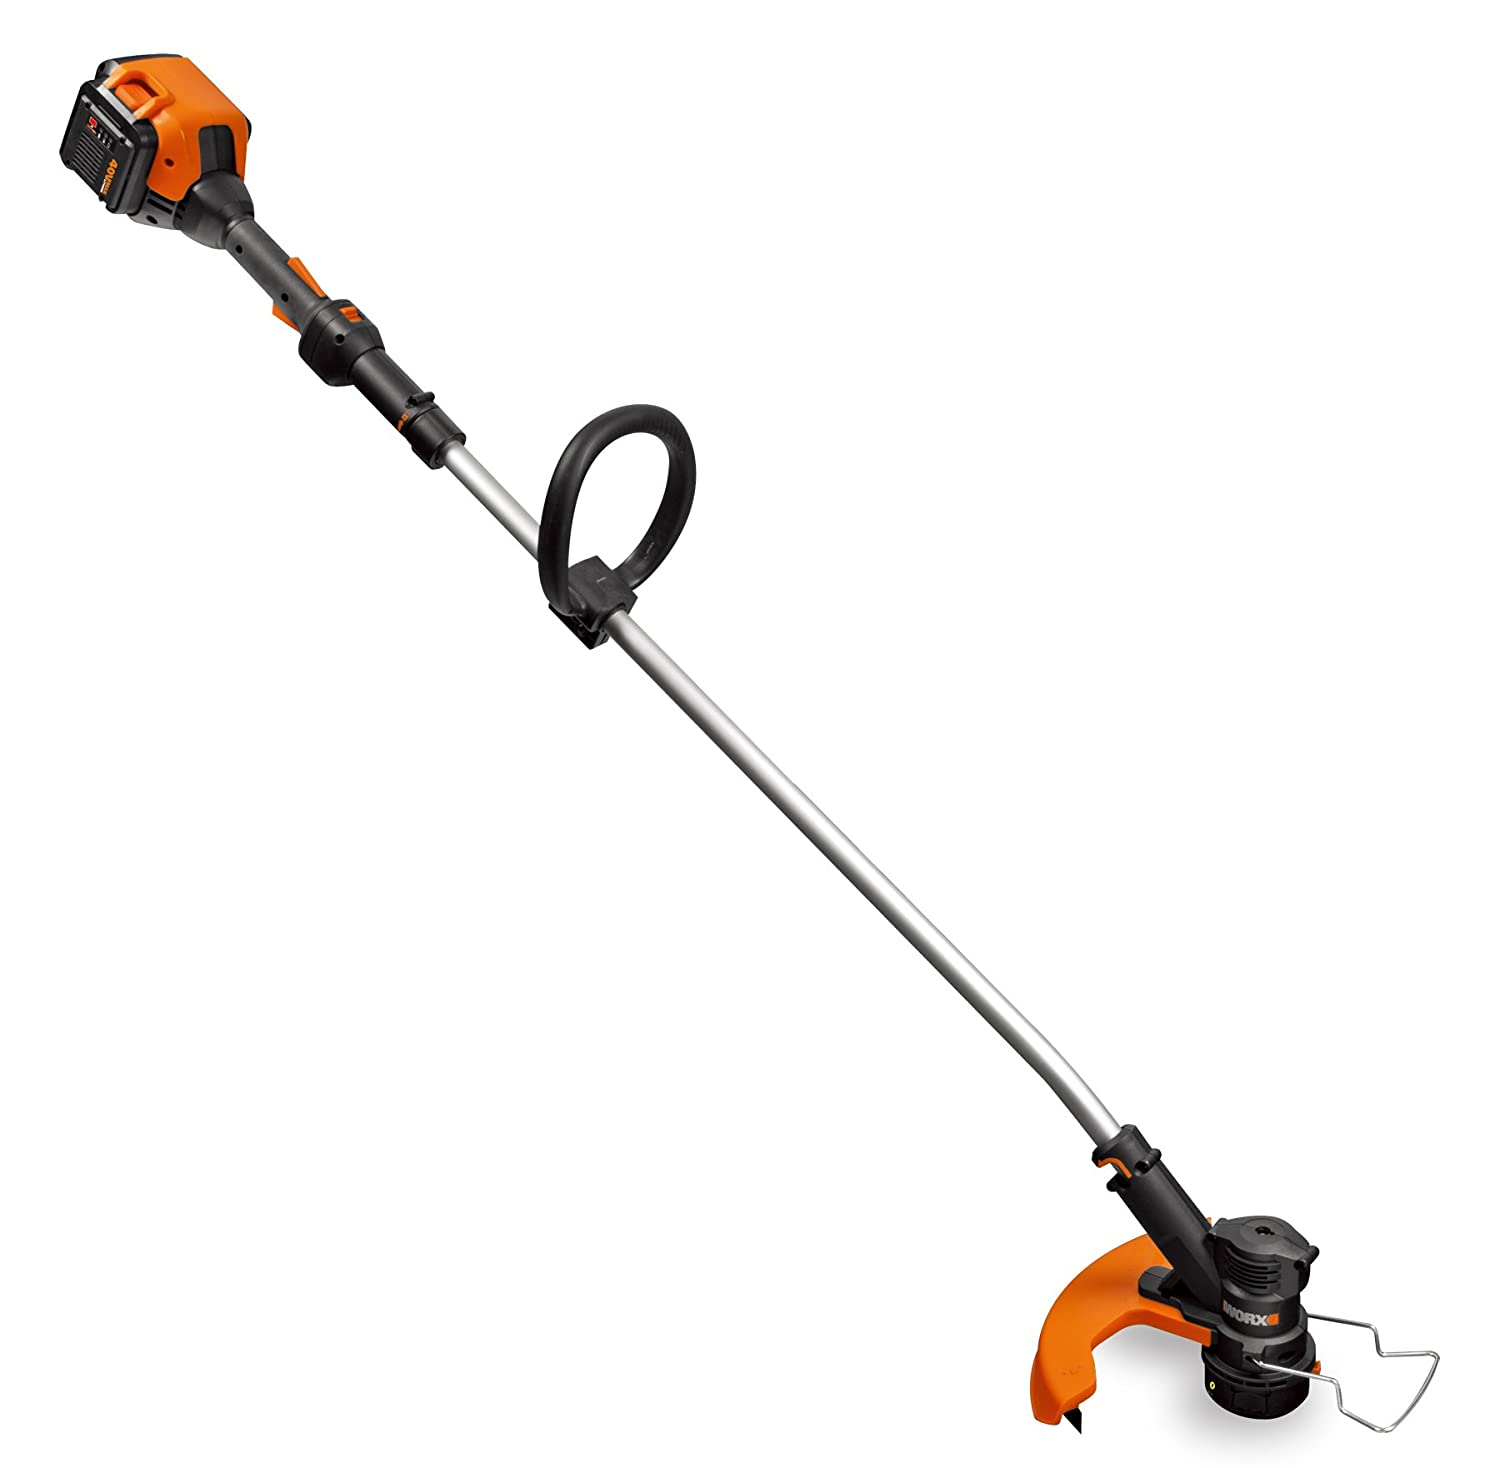 Worx Wg168 40 Volt Lithium Cordless Grass Trimmer And Edger Review also 100659896 in addition Product 200316181 200316181 likewise 172157808123 furthermore 3172443. on de walt 18 volt cordless drill